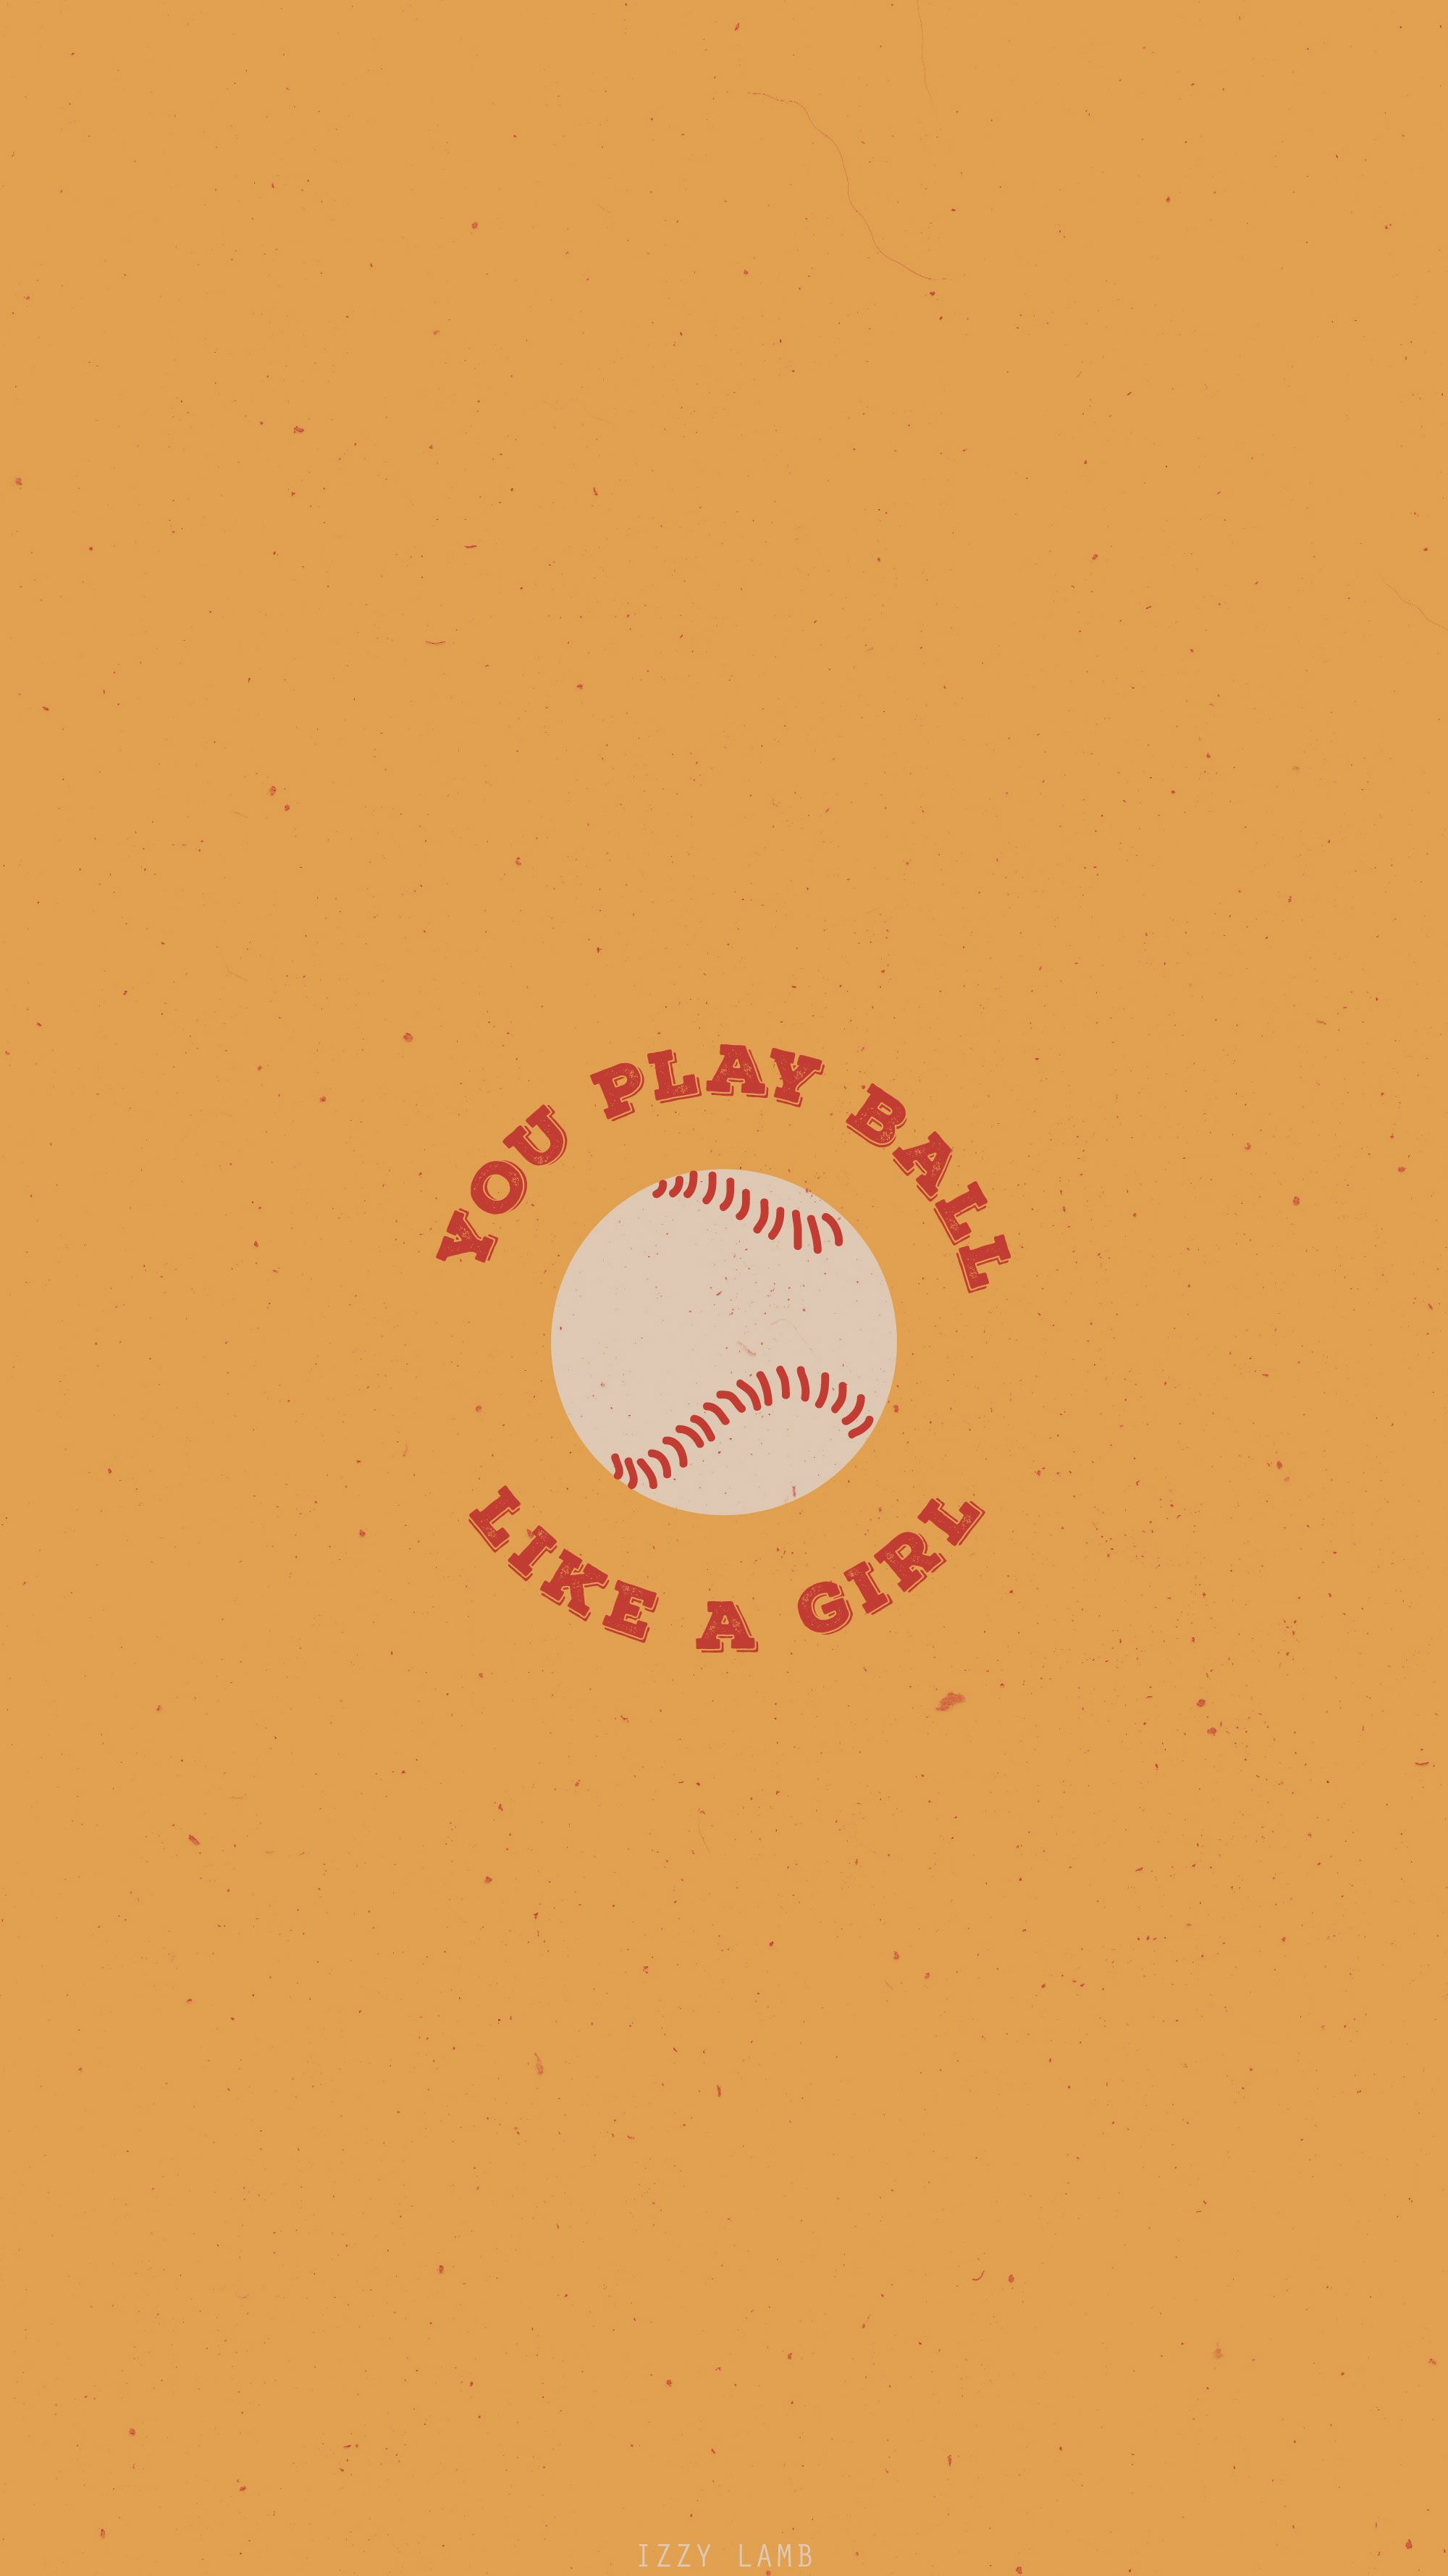 You Play Ball Like A Girl The Sandlot Iphone Wallpaper Quotes Funny Girls Be Like Wallpaper Iphone Quotes Backgrounds